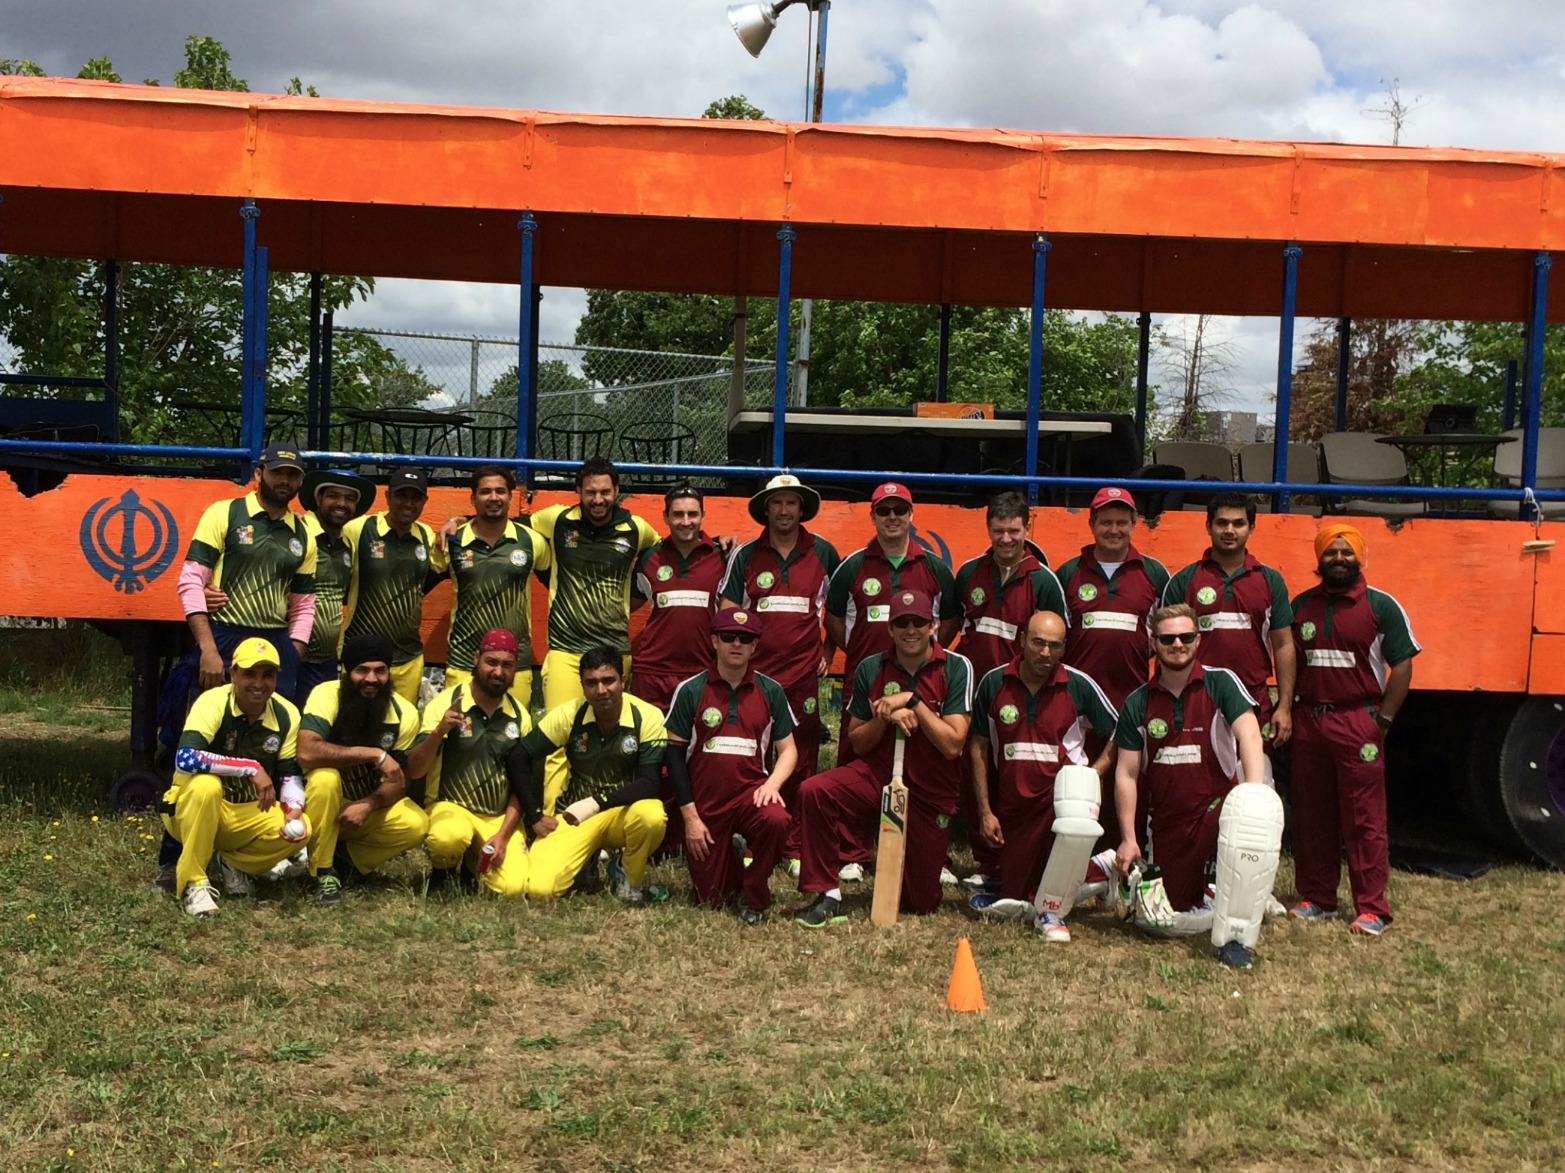 Team picture with Bradshaw CC left (yellow and green) and NVCC on right (maroon and green)